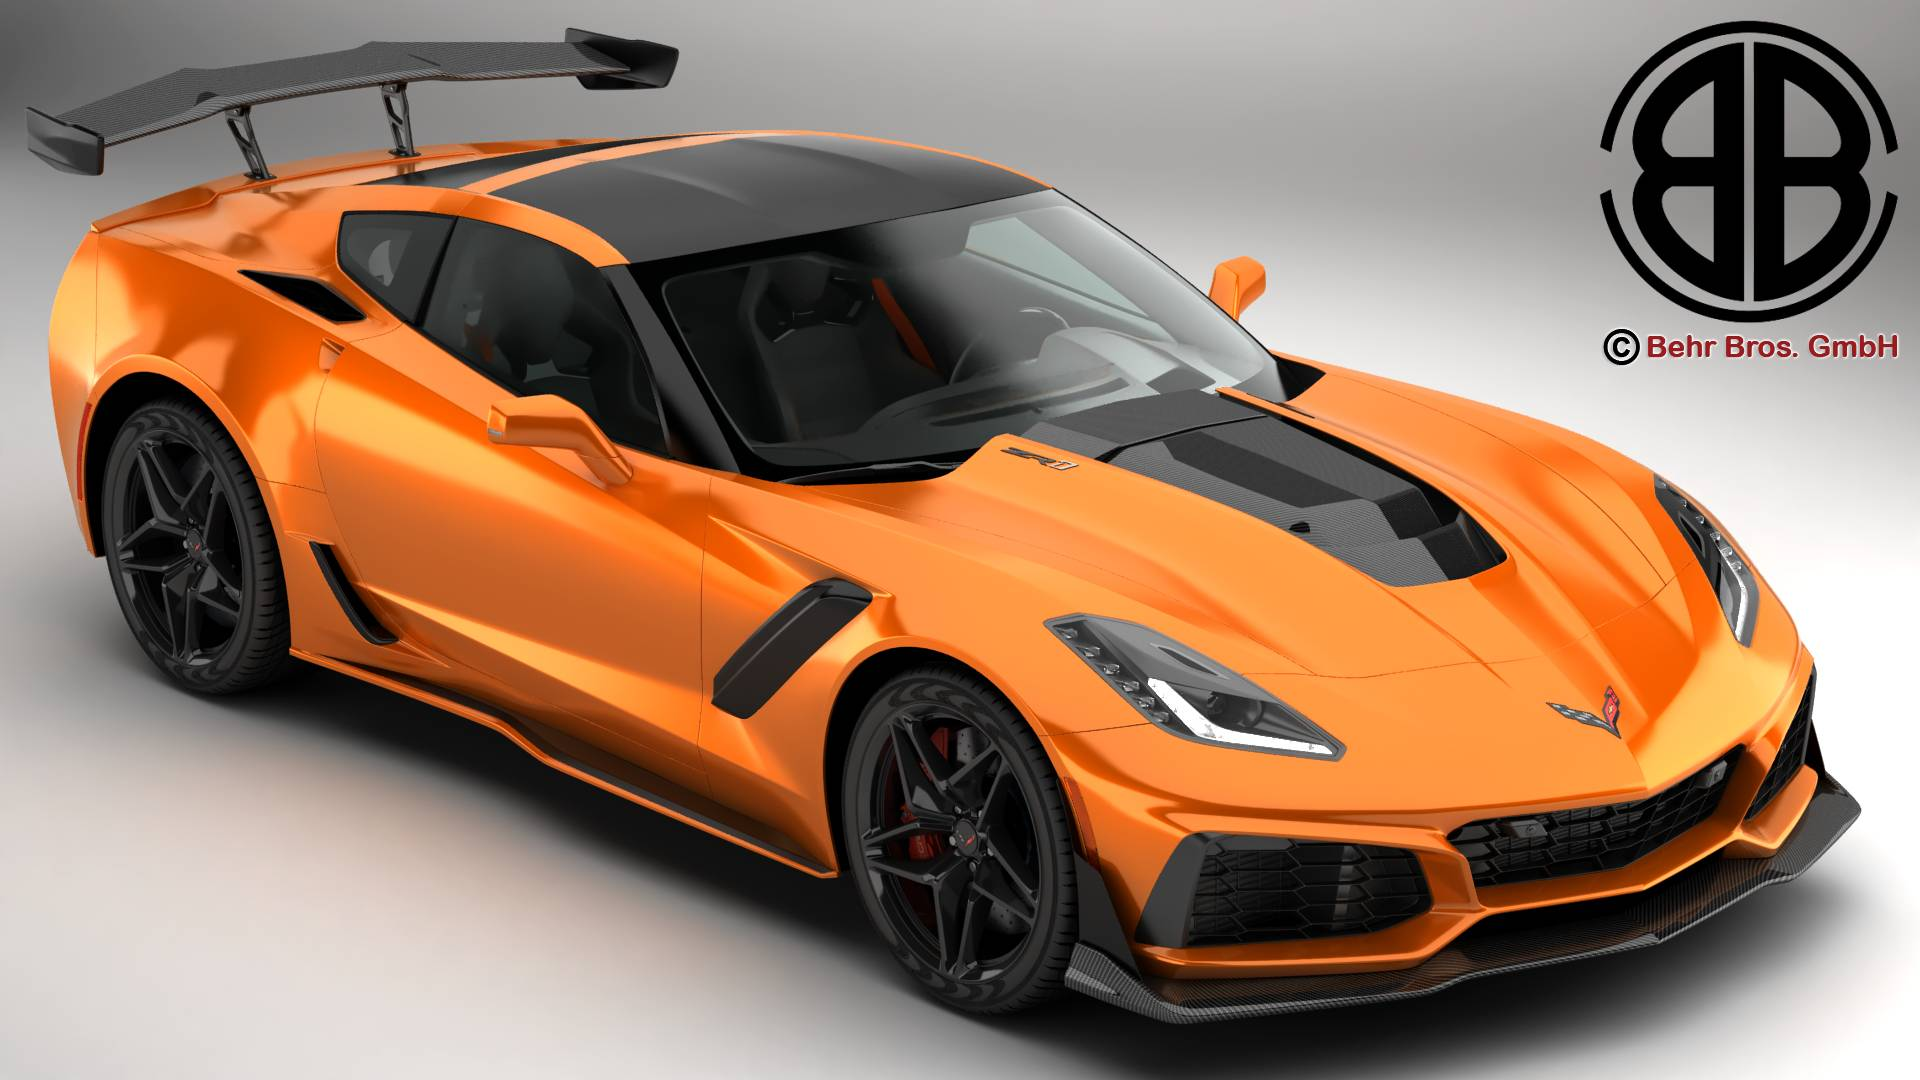 chevrolet corvette zr1 2019 3d model 3ds max fbx c4d lwo ma mb obj 275966